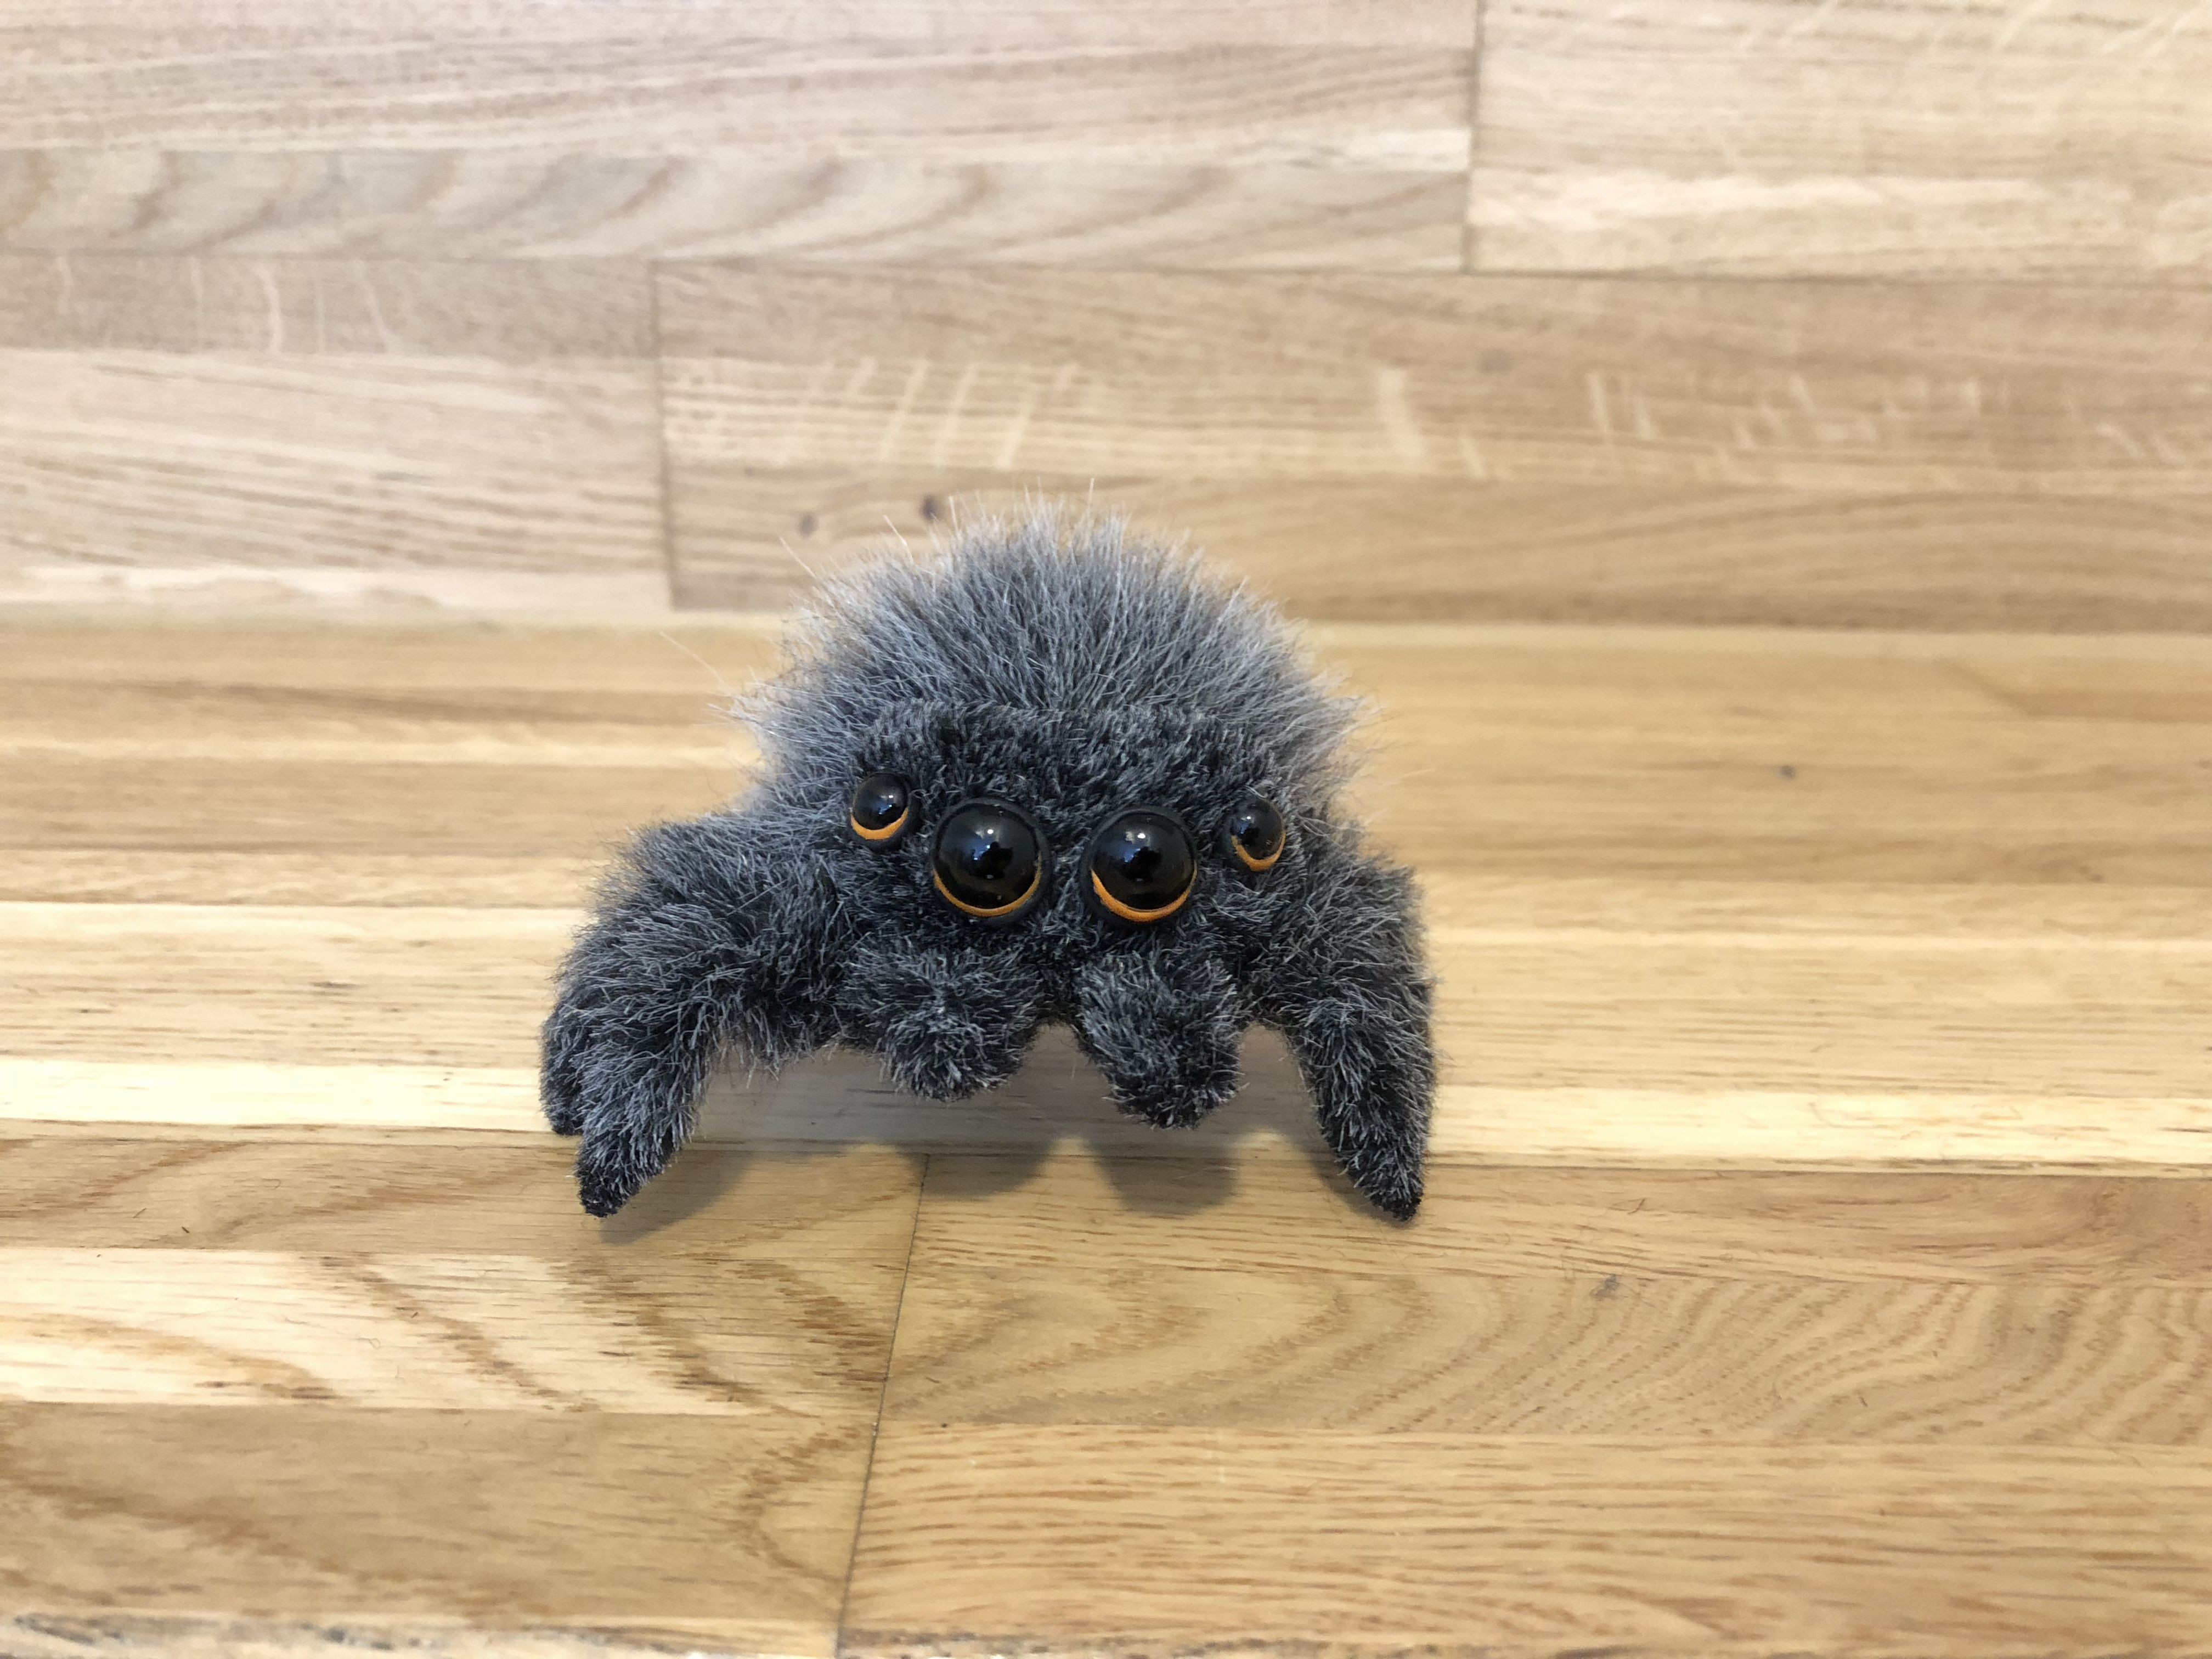 http//etsy.me/2mX2ktg Find cute spiders for sale or get a